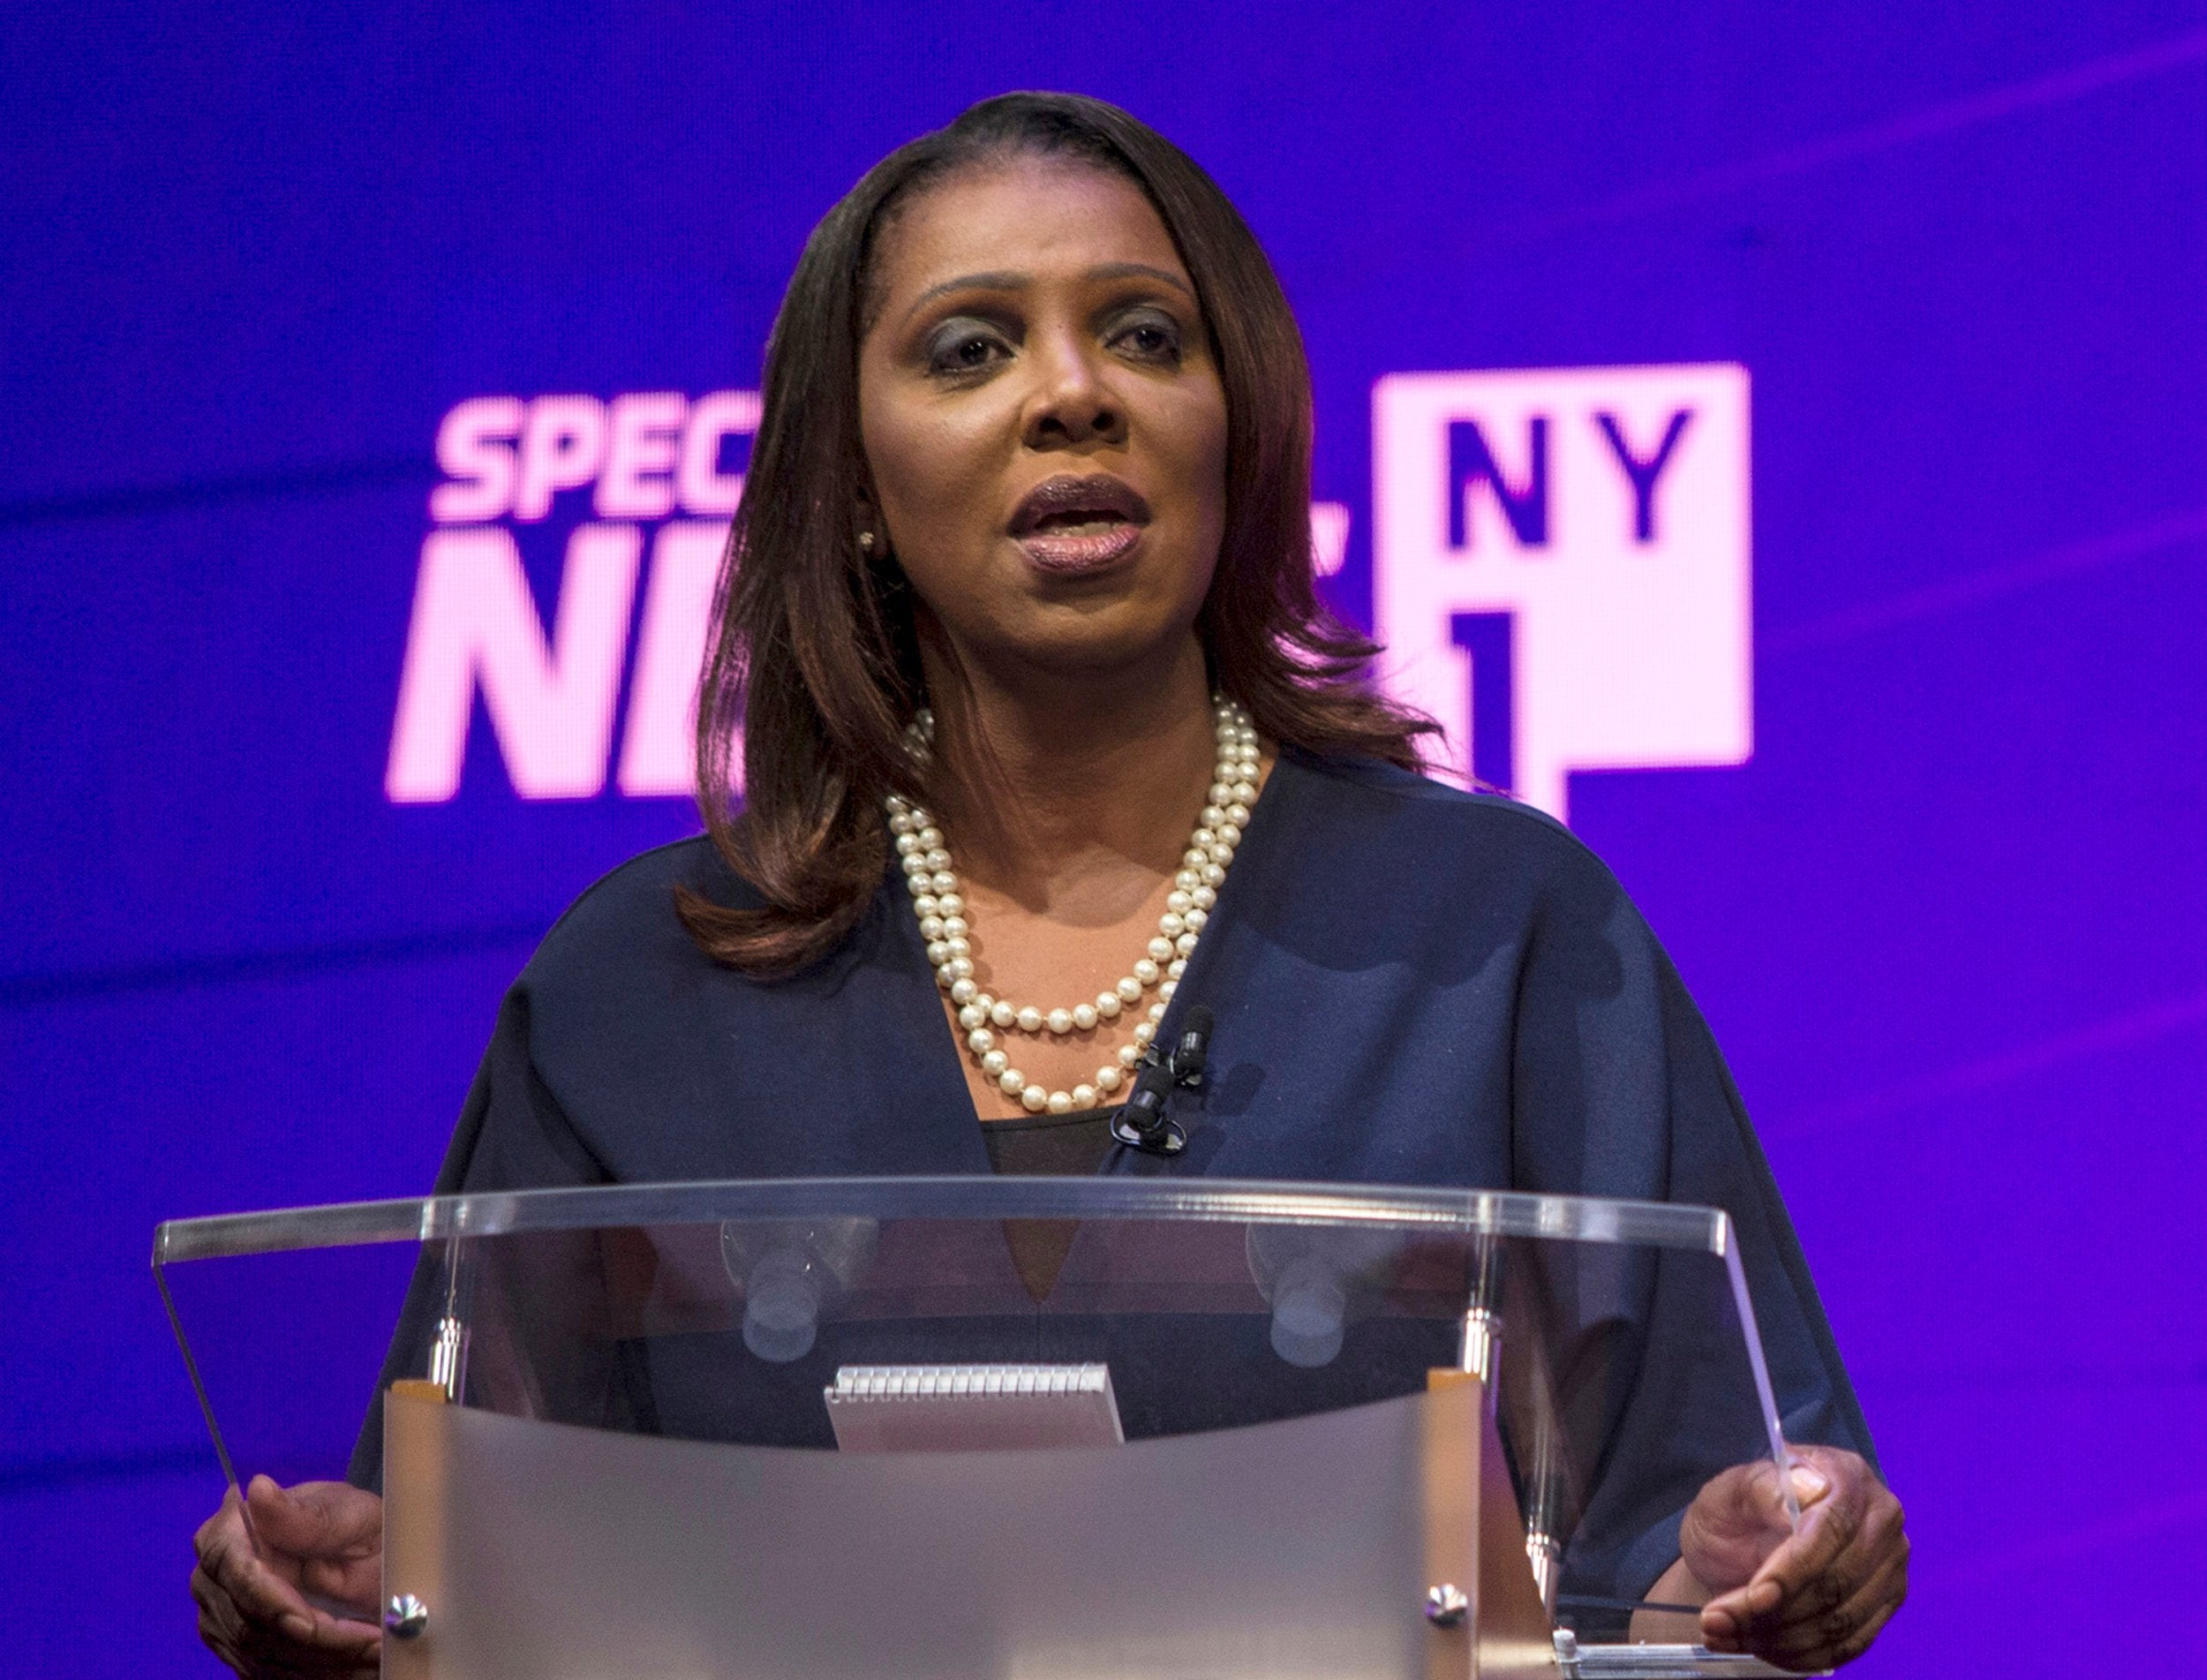 Letitia James: Woman on course to be New York's first black state attorney general attacks Trump in victory speech